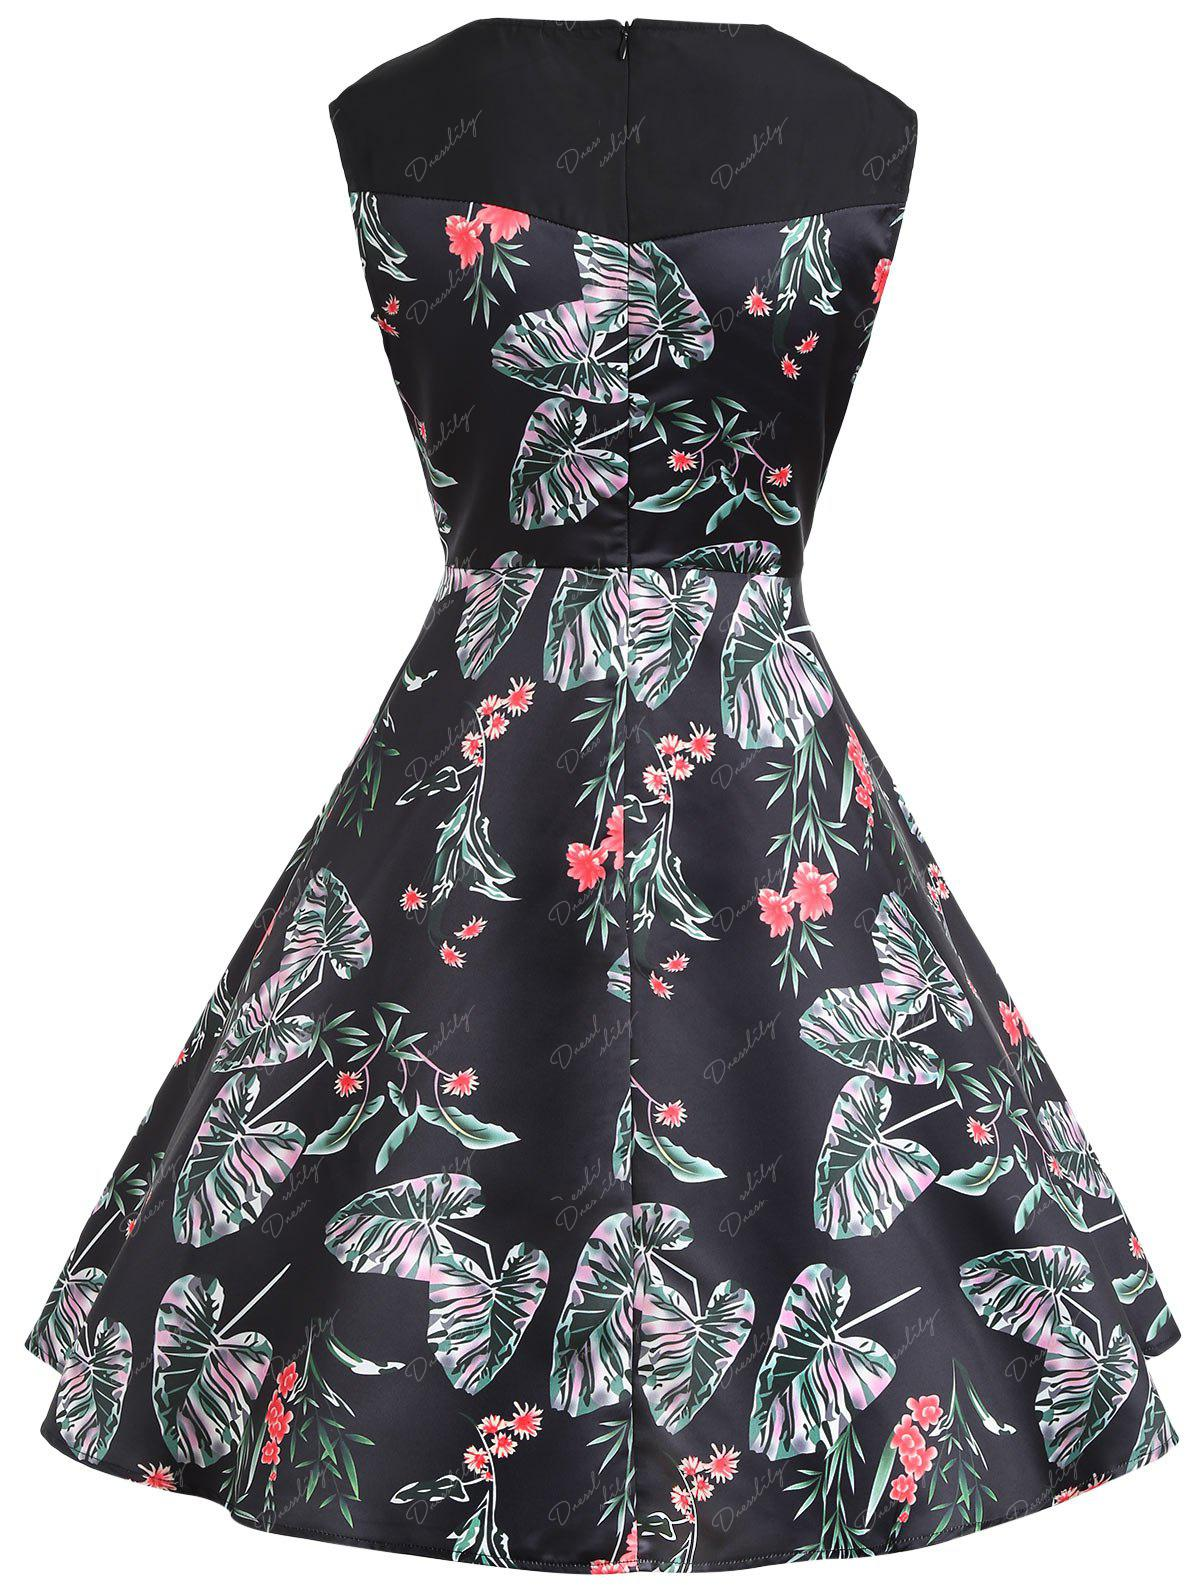 Floral Print A Line Sweetheart Vintage Dress - BLACK S